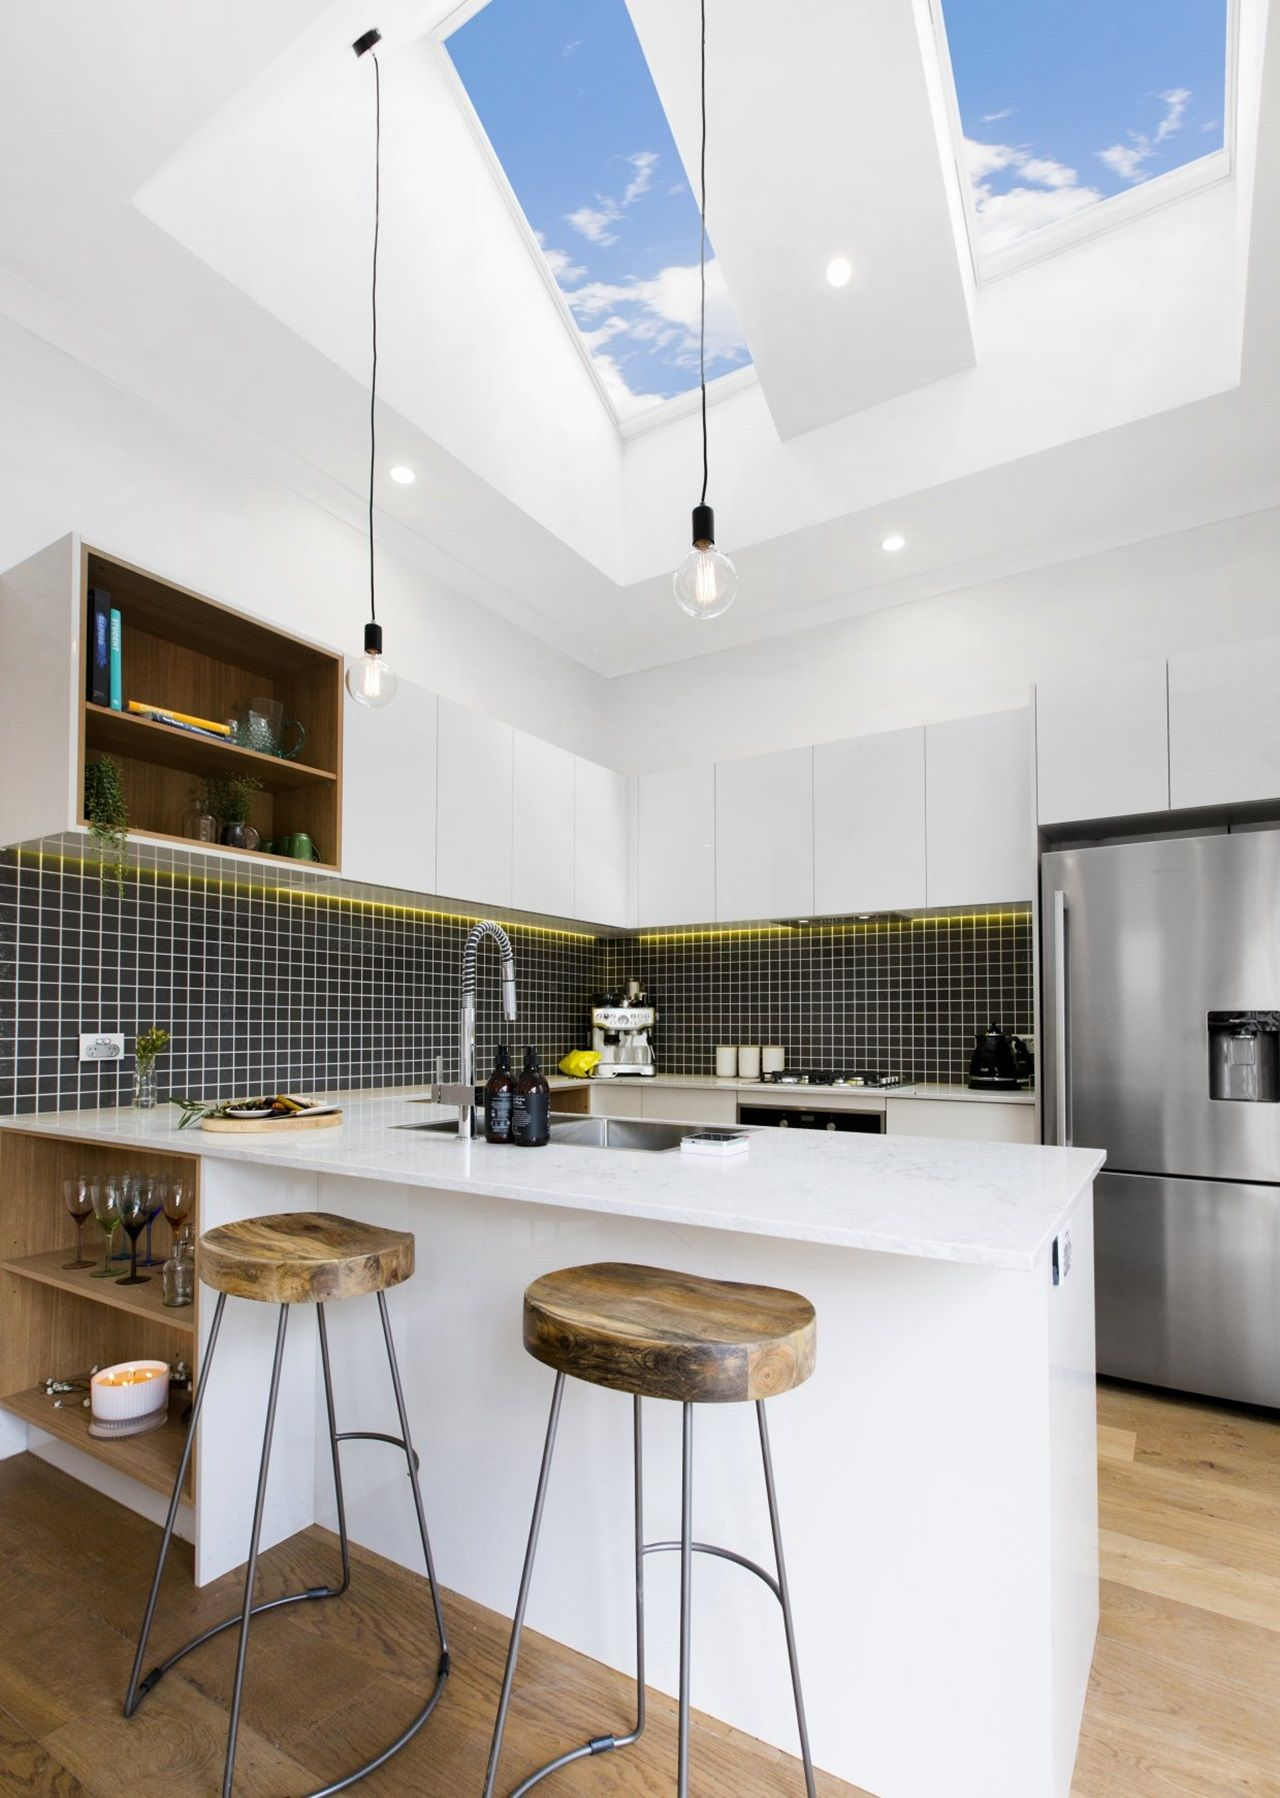 Velux Skylights Will Have A Huge Impact On Your Kitchen